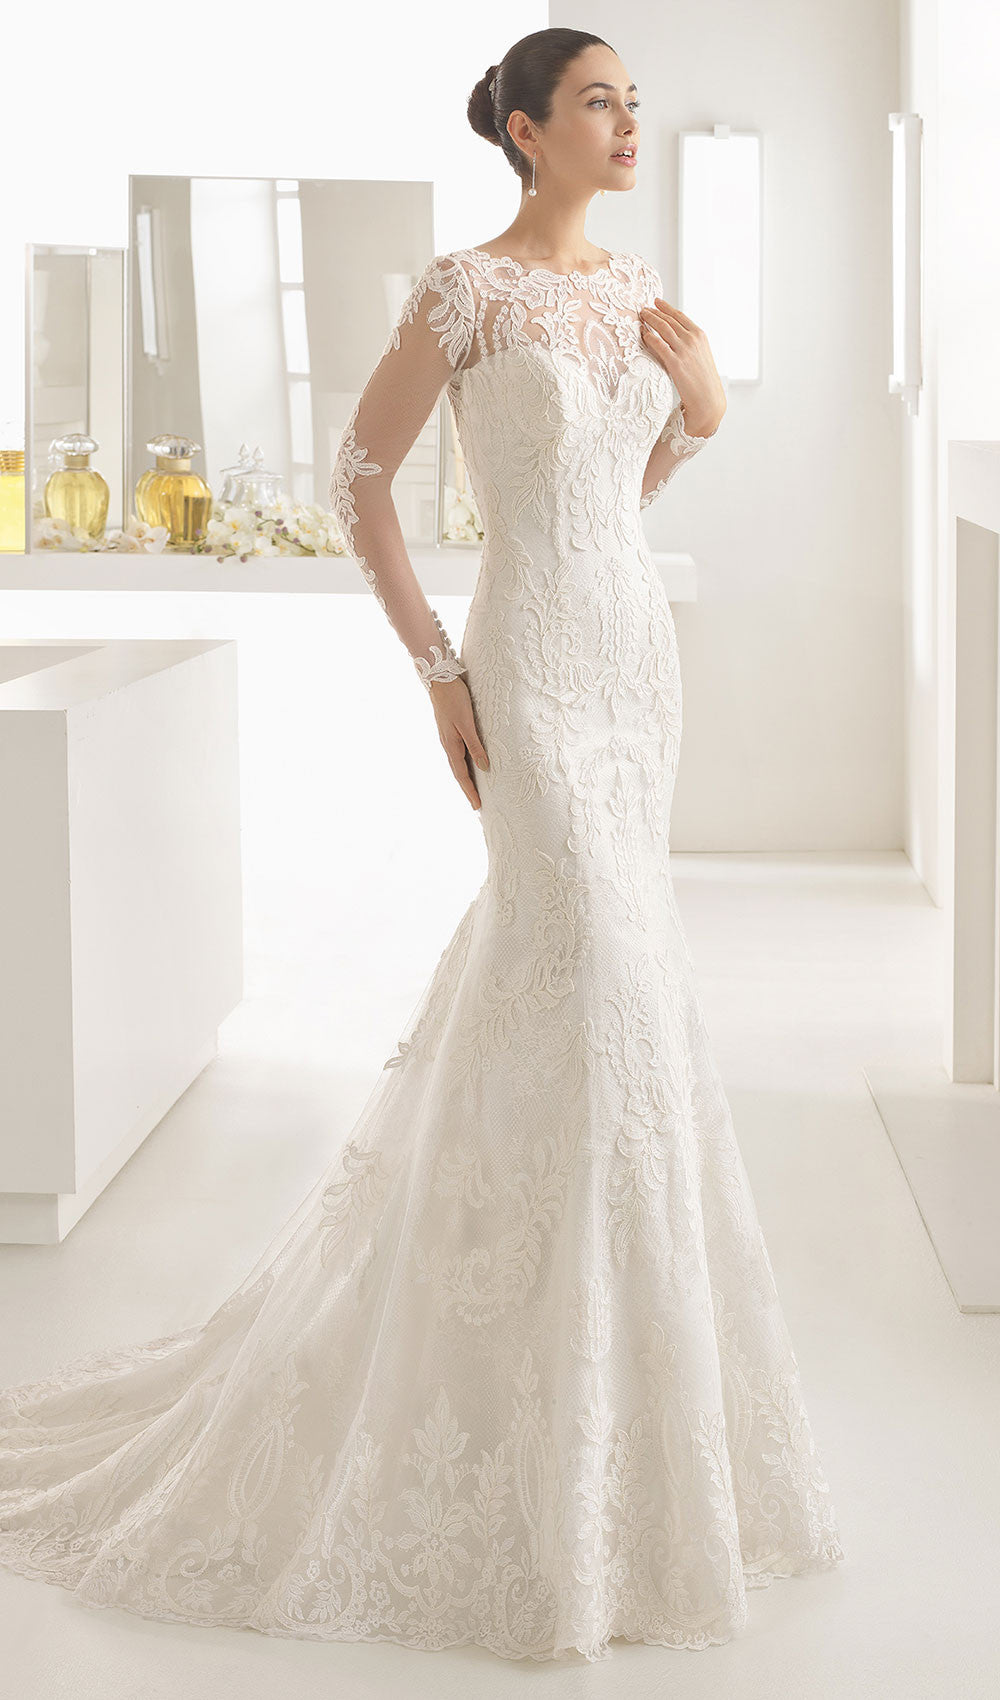 Rosa Clara - STYLE OLAF | Schaffer's Bridal in Des Moines, Iowa and in Scottsdale, Arizona